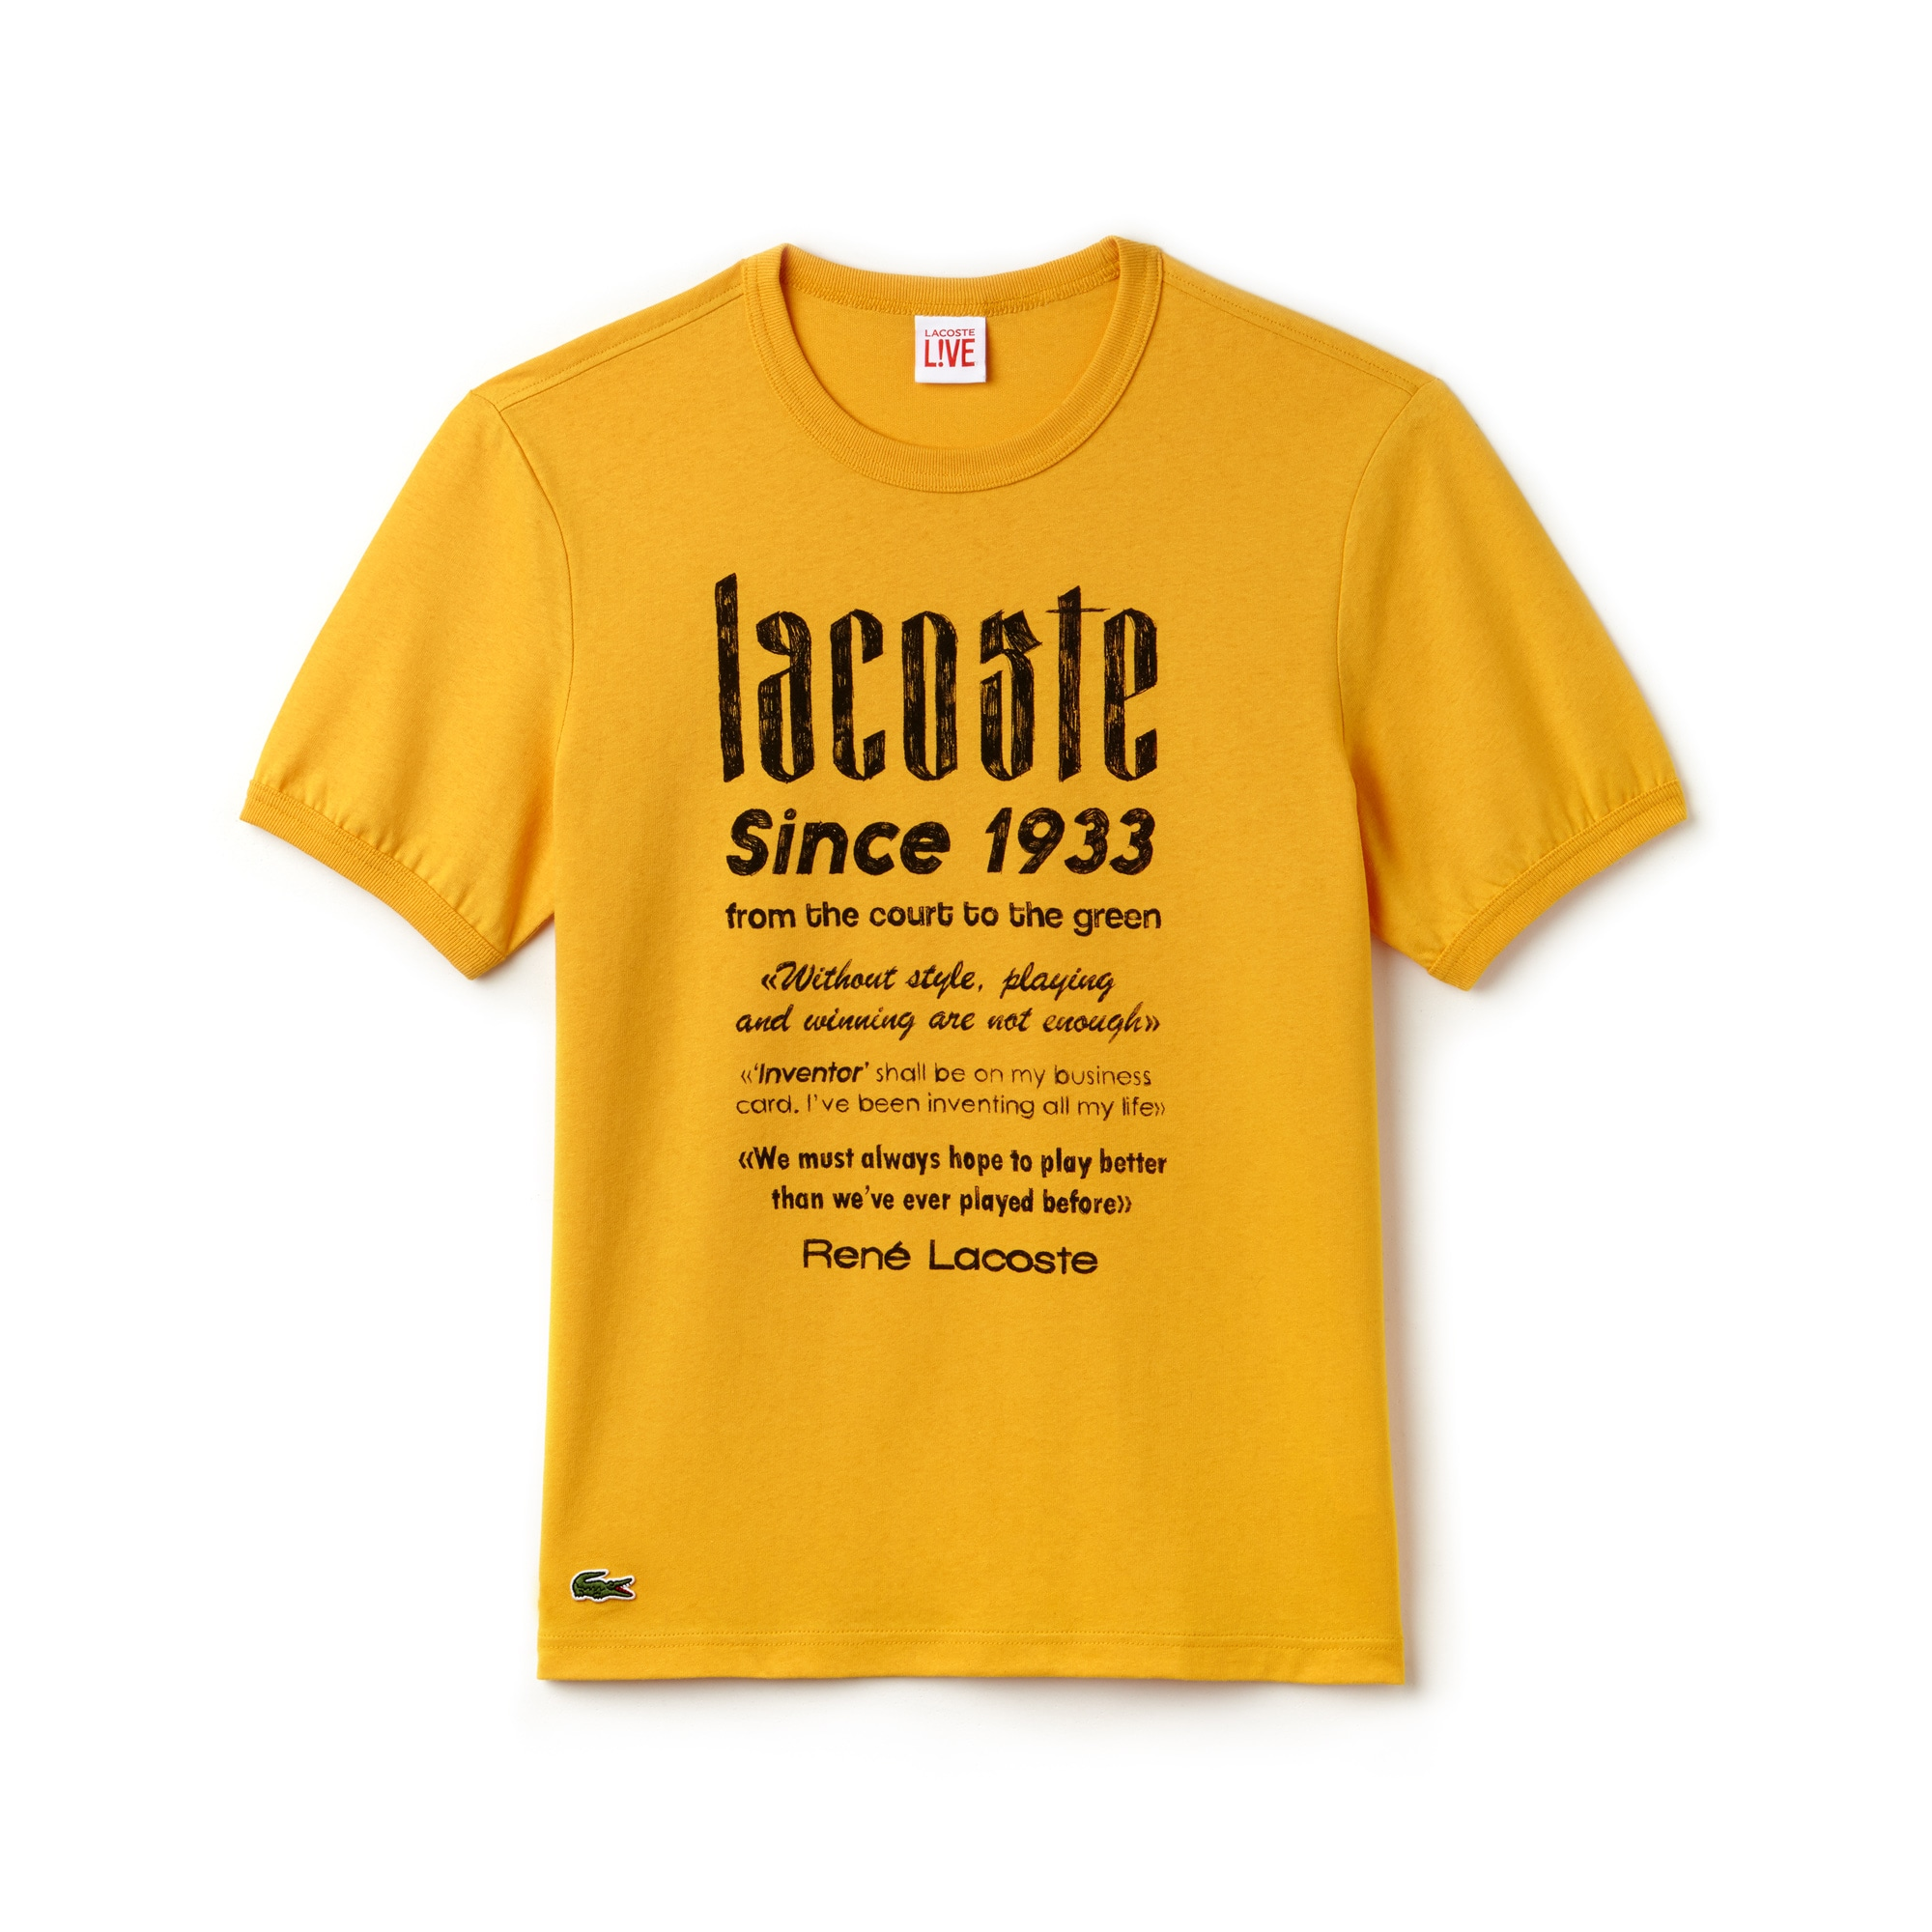 라코스테 Lacoste Mens LIVE Crew Neck Heritage Print Cotton Jersey T-shirt,kumquat/black